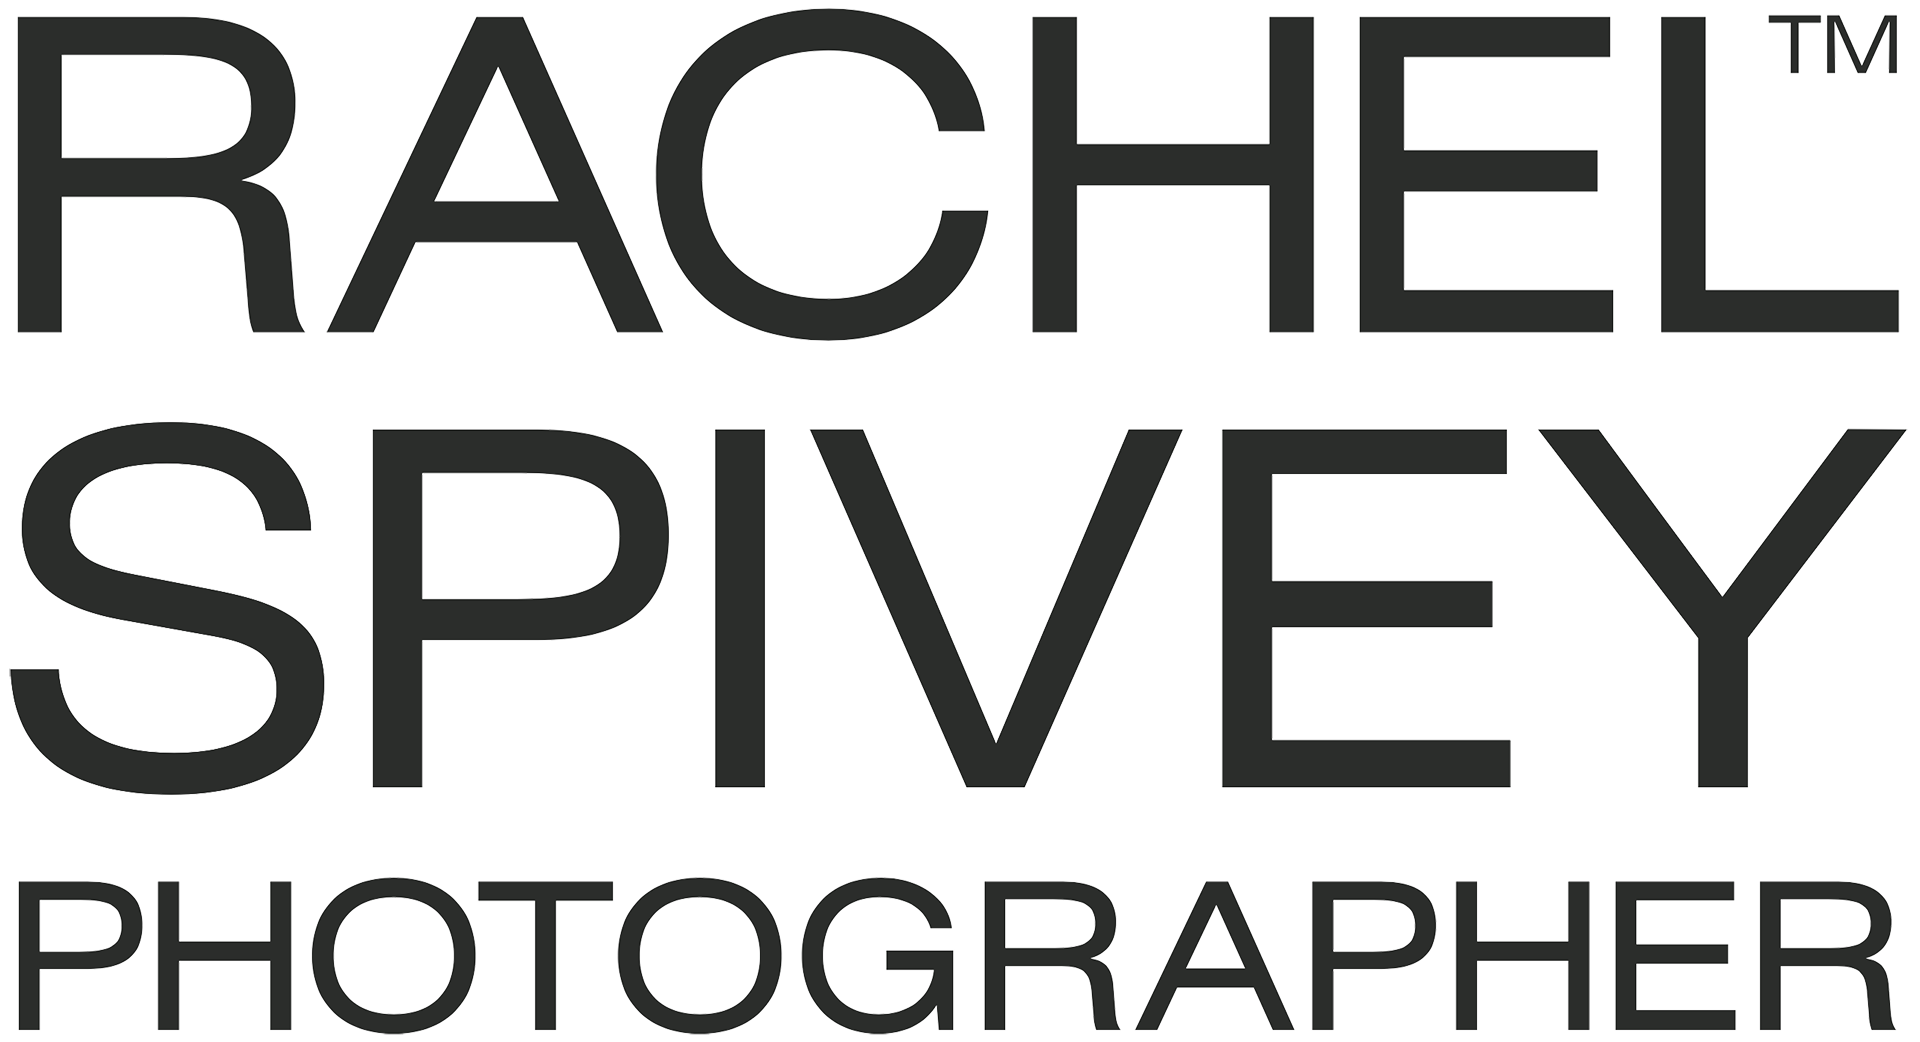 Rachel Spivey Photographer